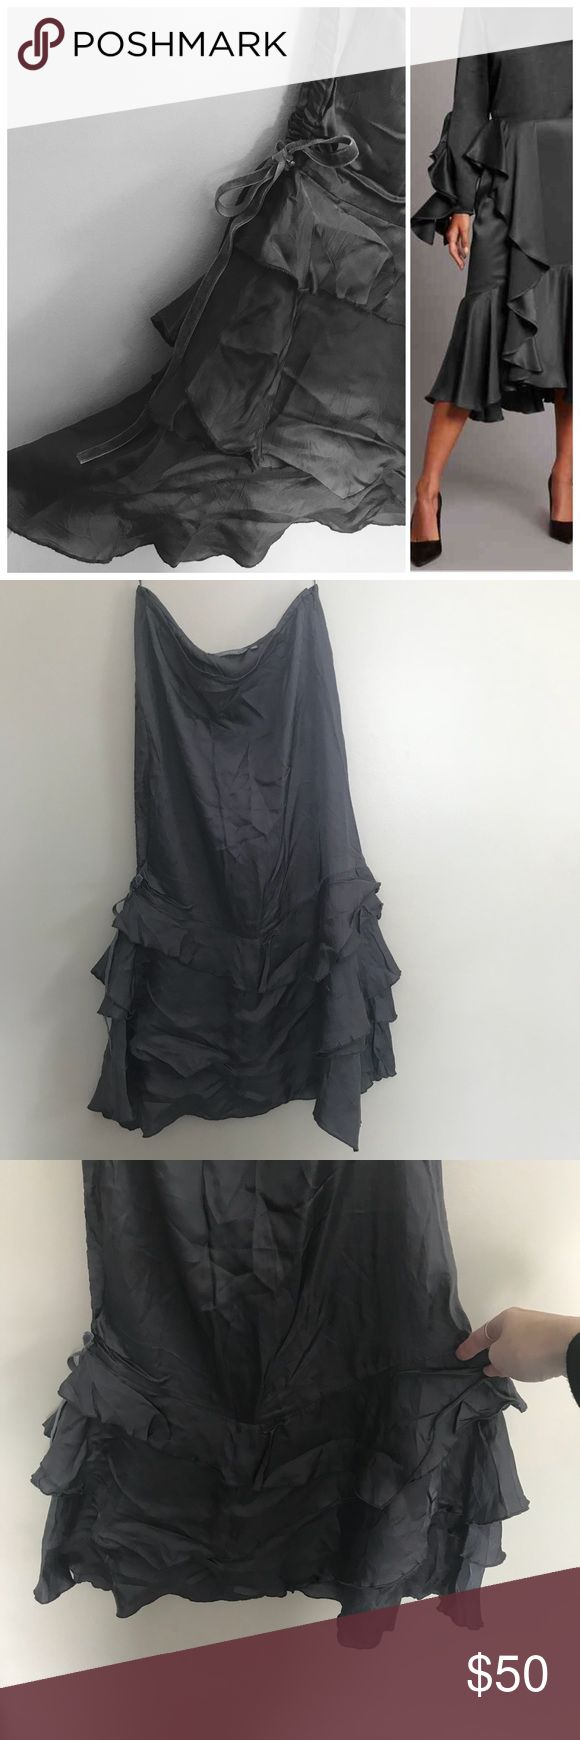 "Per Una Viscose Ruffle Skirt NWOT Silvered Grey with tiered ruffles asymmetrically around the bottom. Velvet bow tie accents at the edge. Absolutely gorgeous and never worn. Size 10 regular  15"" waist  33"" length Marks & Spencer Skirts Asymmetrical"